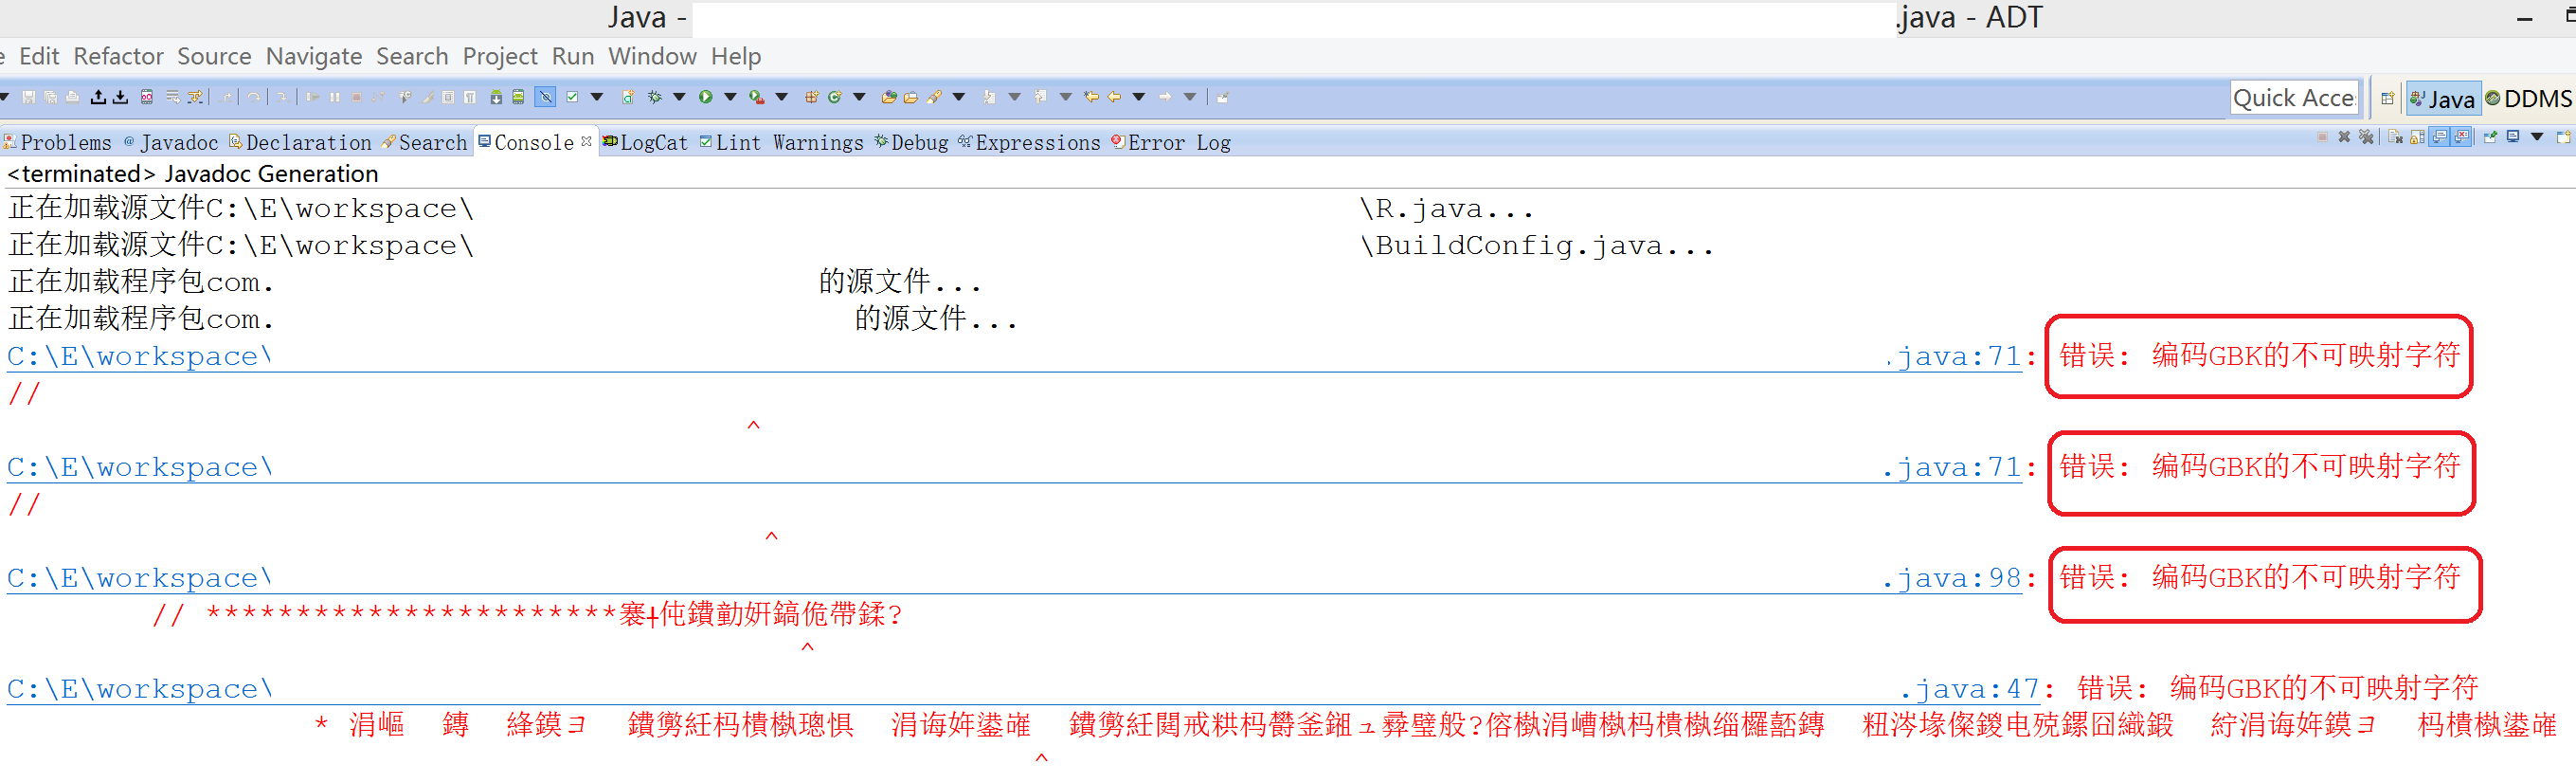 eclipse-export-javadoc-occurs-that-there-are-characters-which-are-unmappable-by-gbk-encoding-error